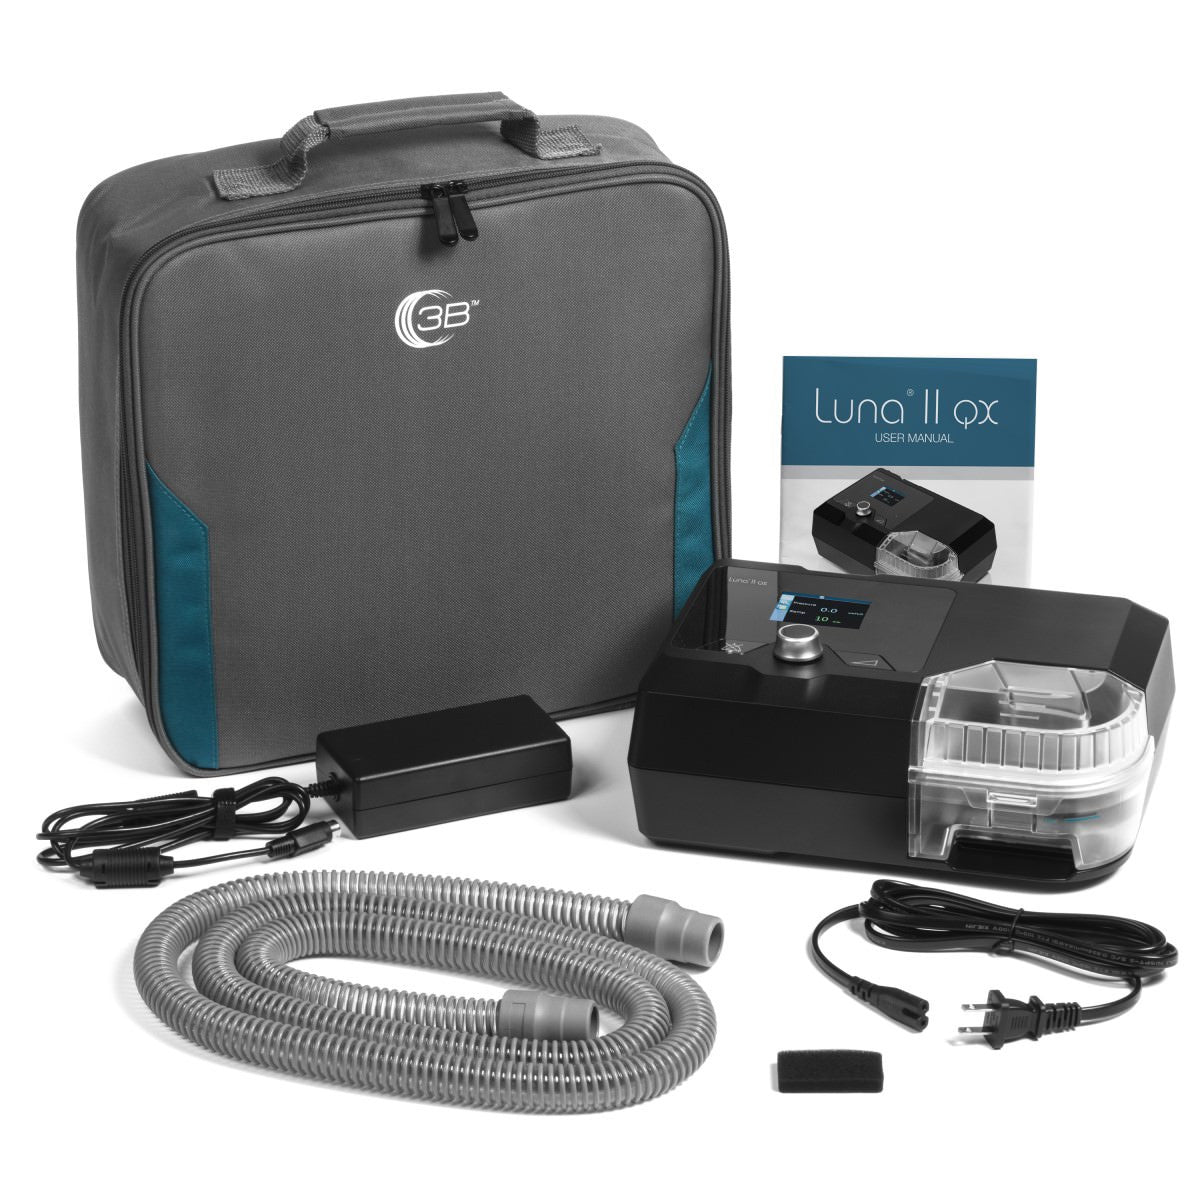 Front view of carrying case, Luna II QX CPAP Machine, swivel tube connector, user manual and battery adapter.